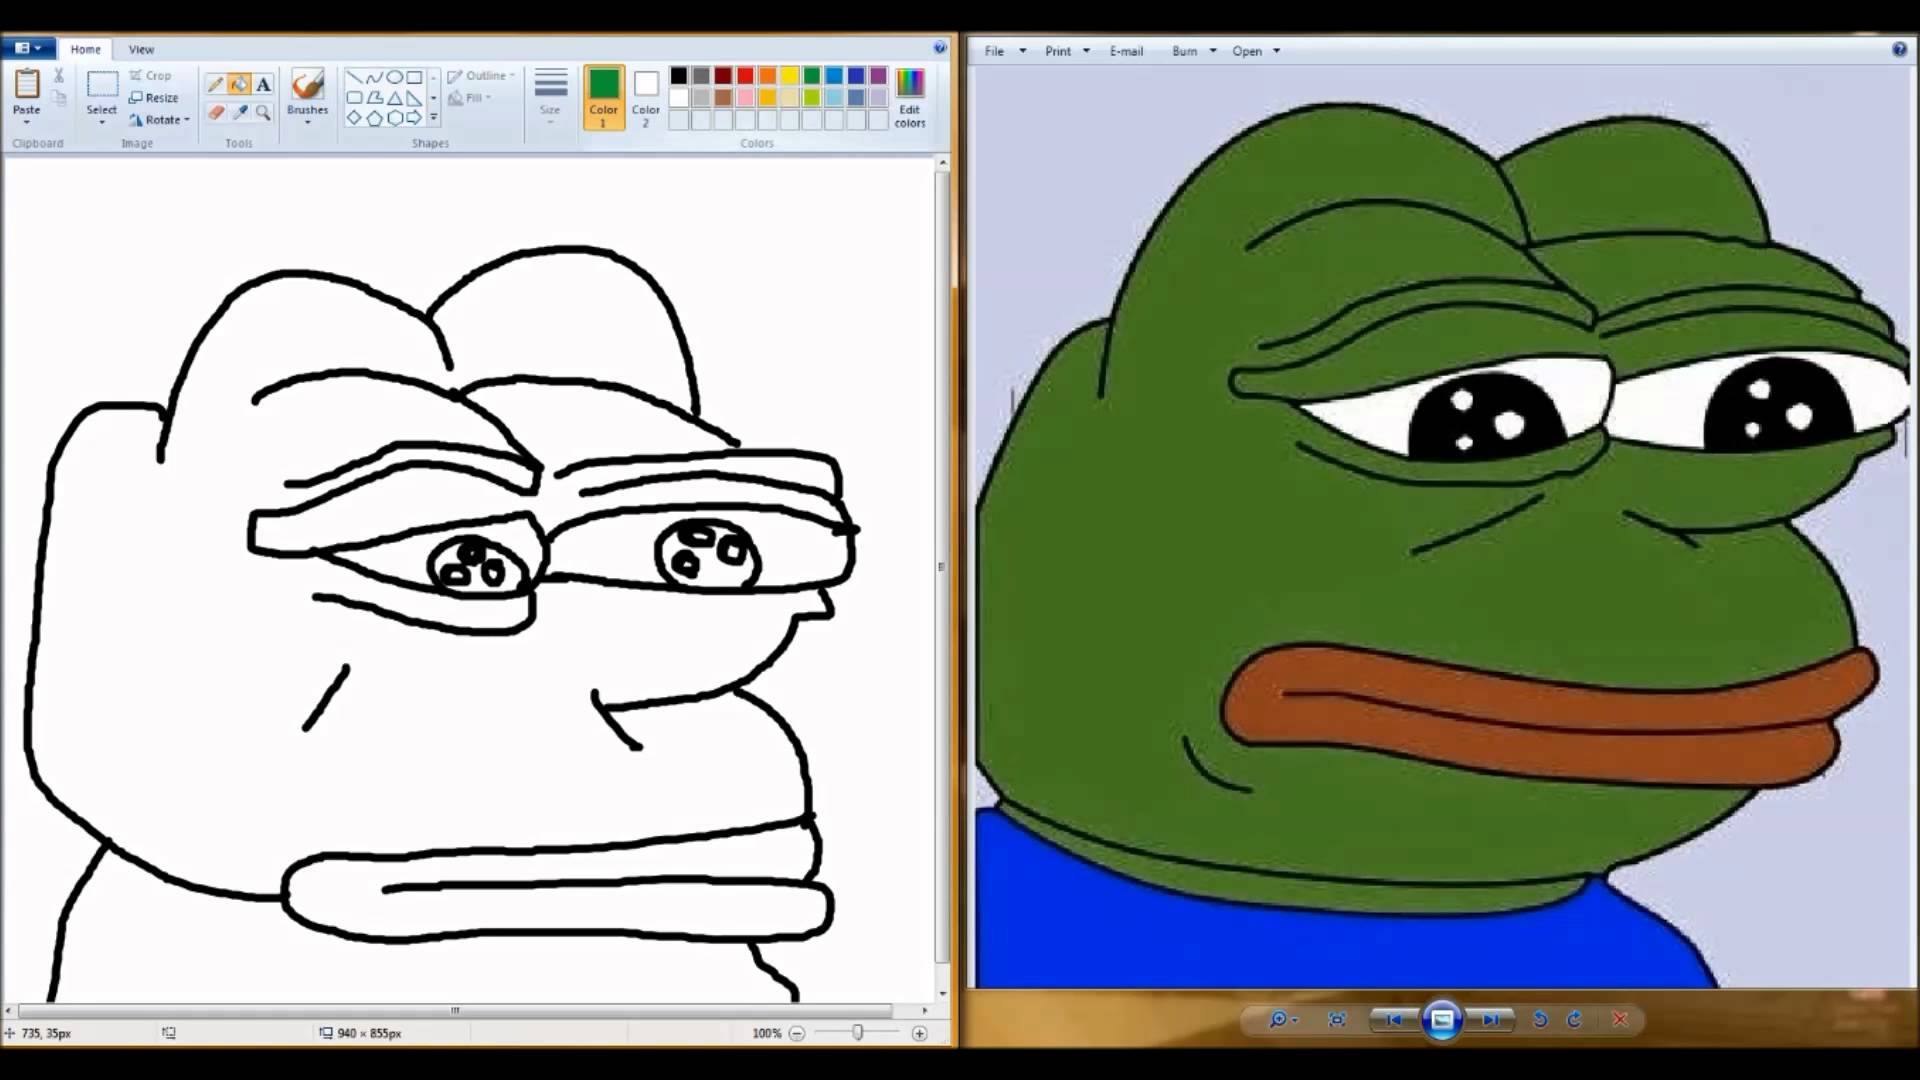 pepe frog drawing at getdrawings com free for personal use pepe